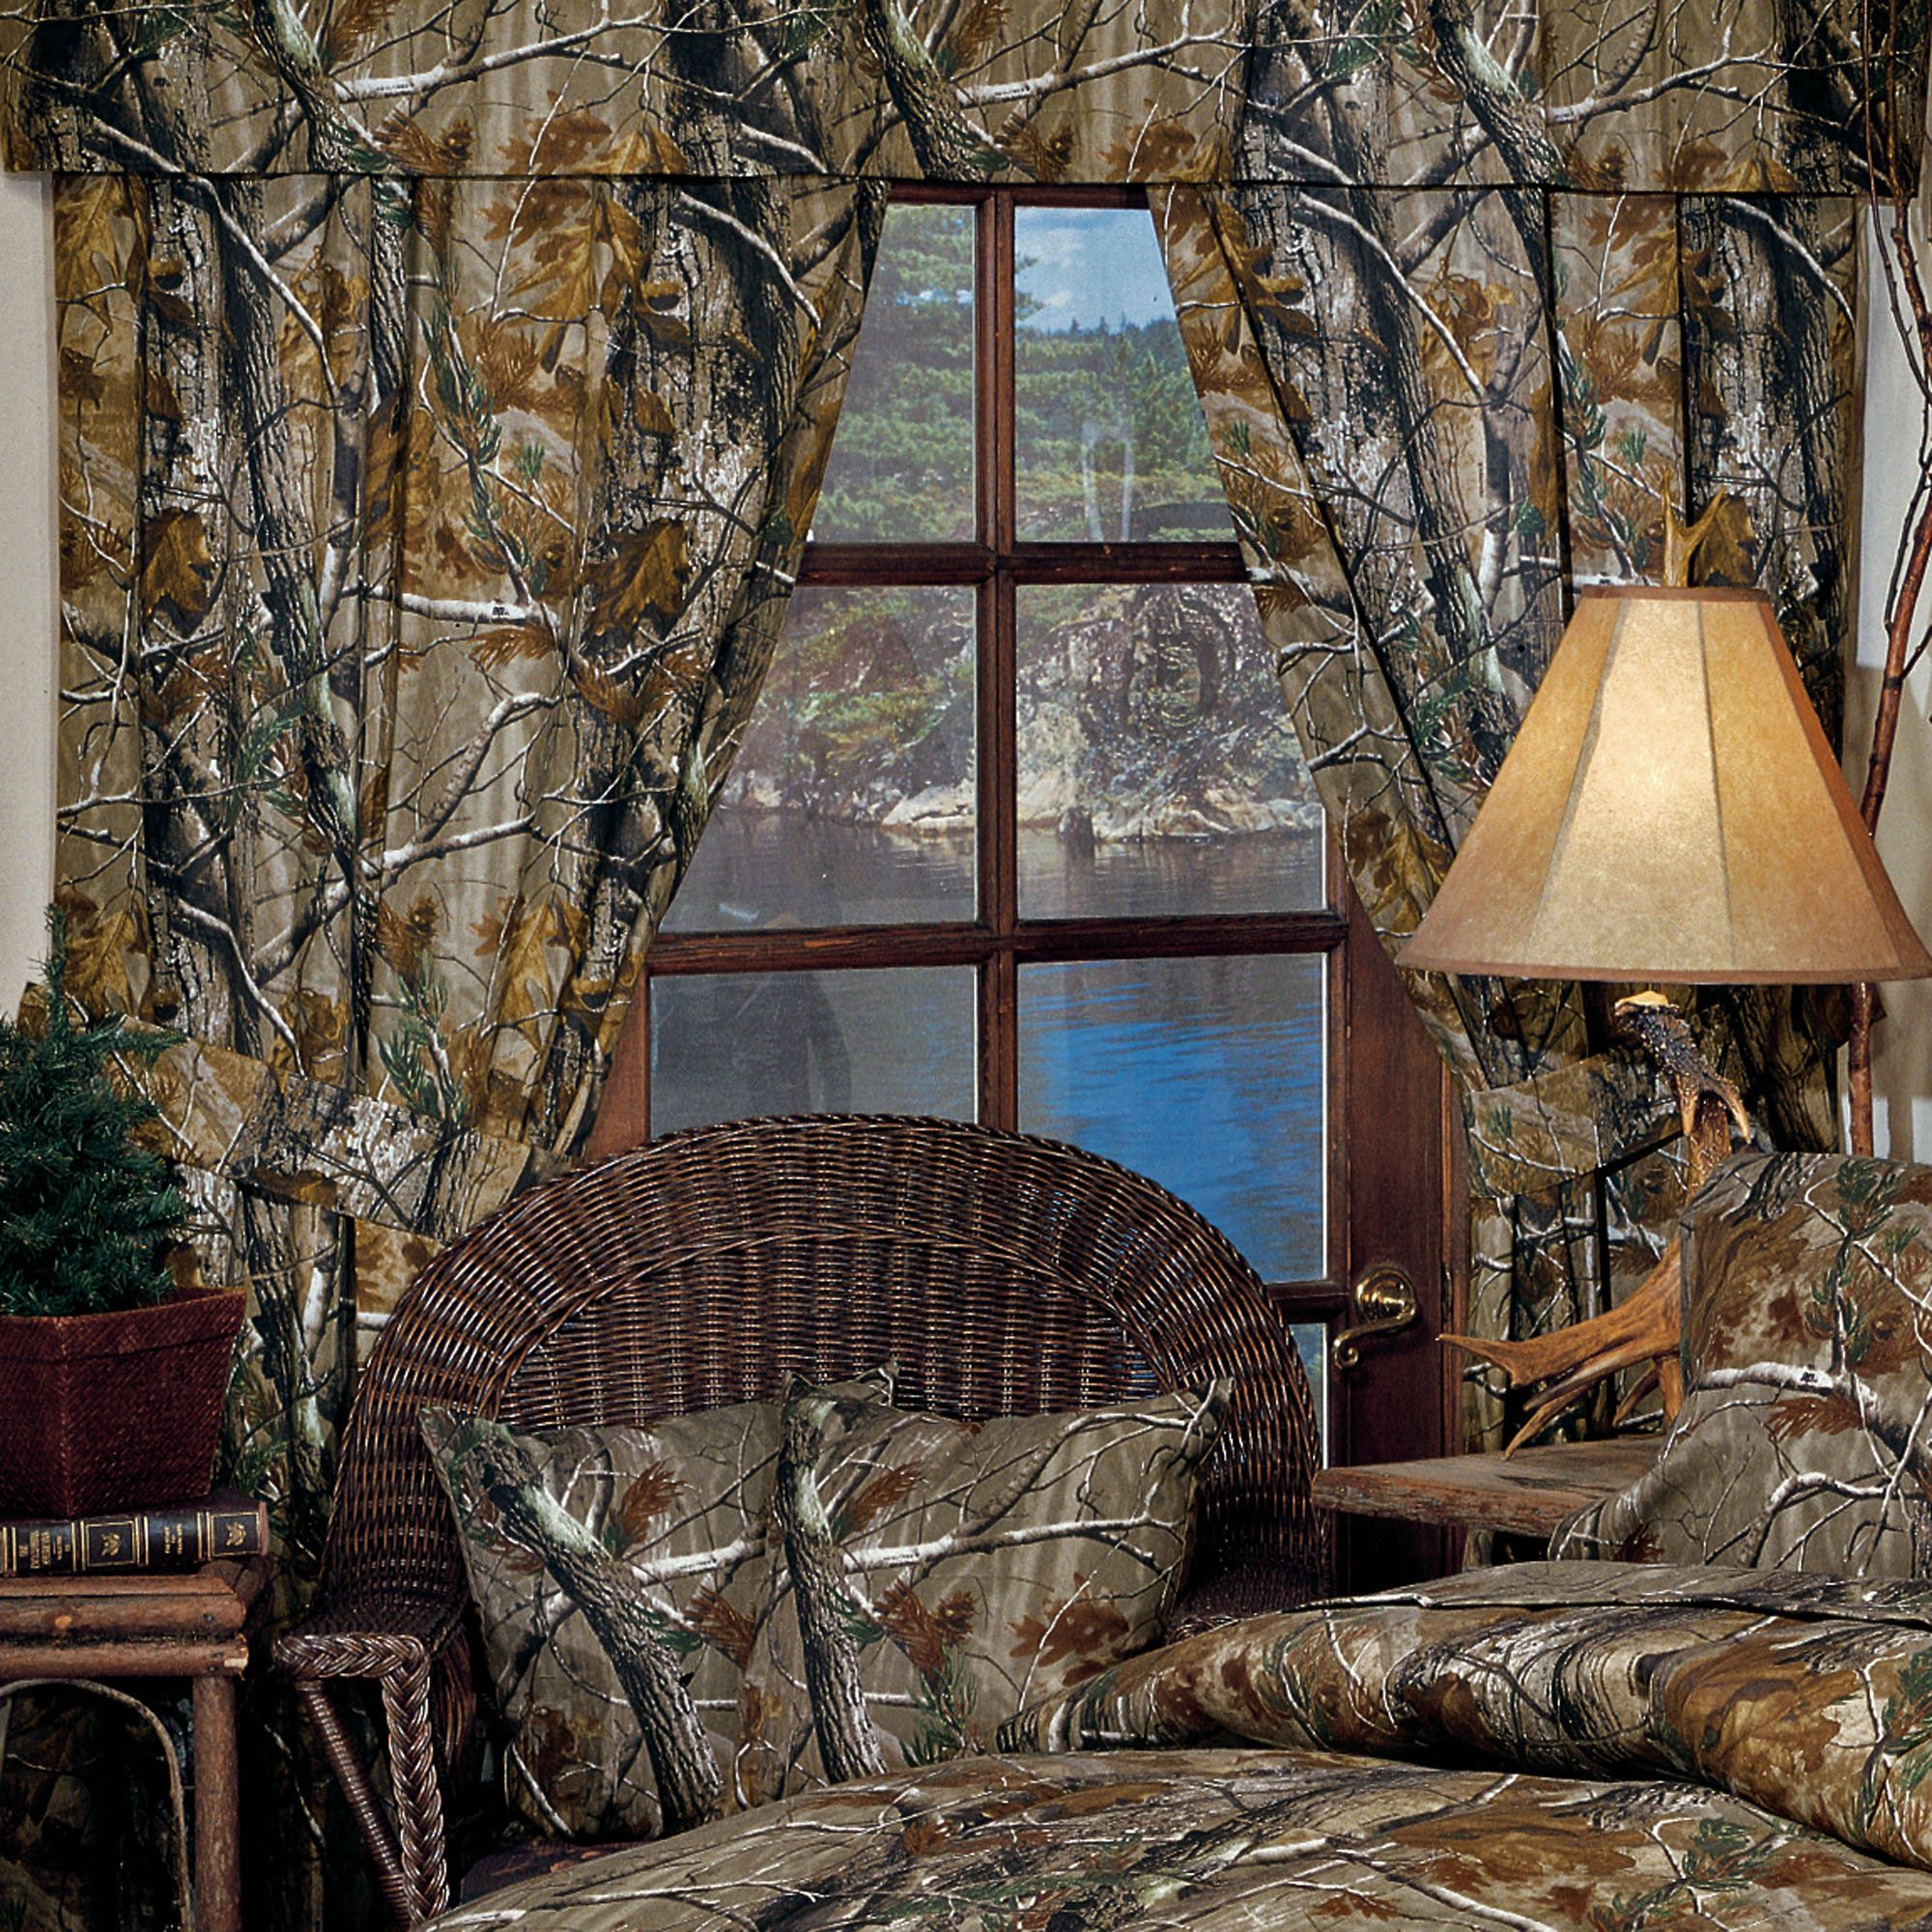 home panels pocket curtain picturesque text italian village sheer print treatments coastal graphic urban rod panorama drapes view lago pdp east camo famous semi window aerial lake di